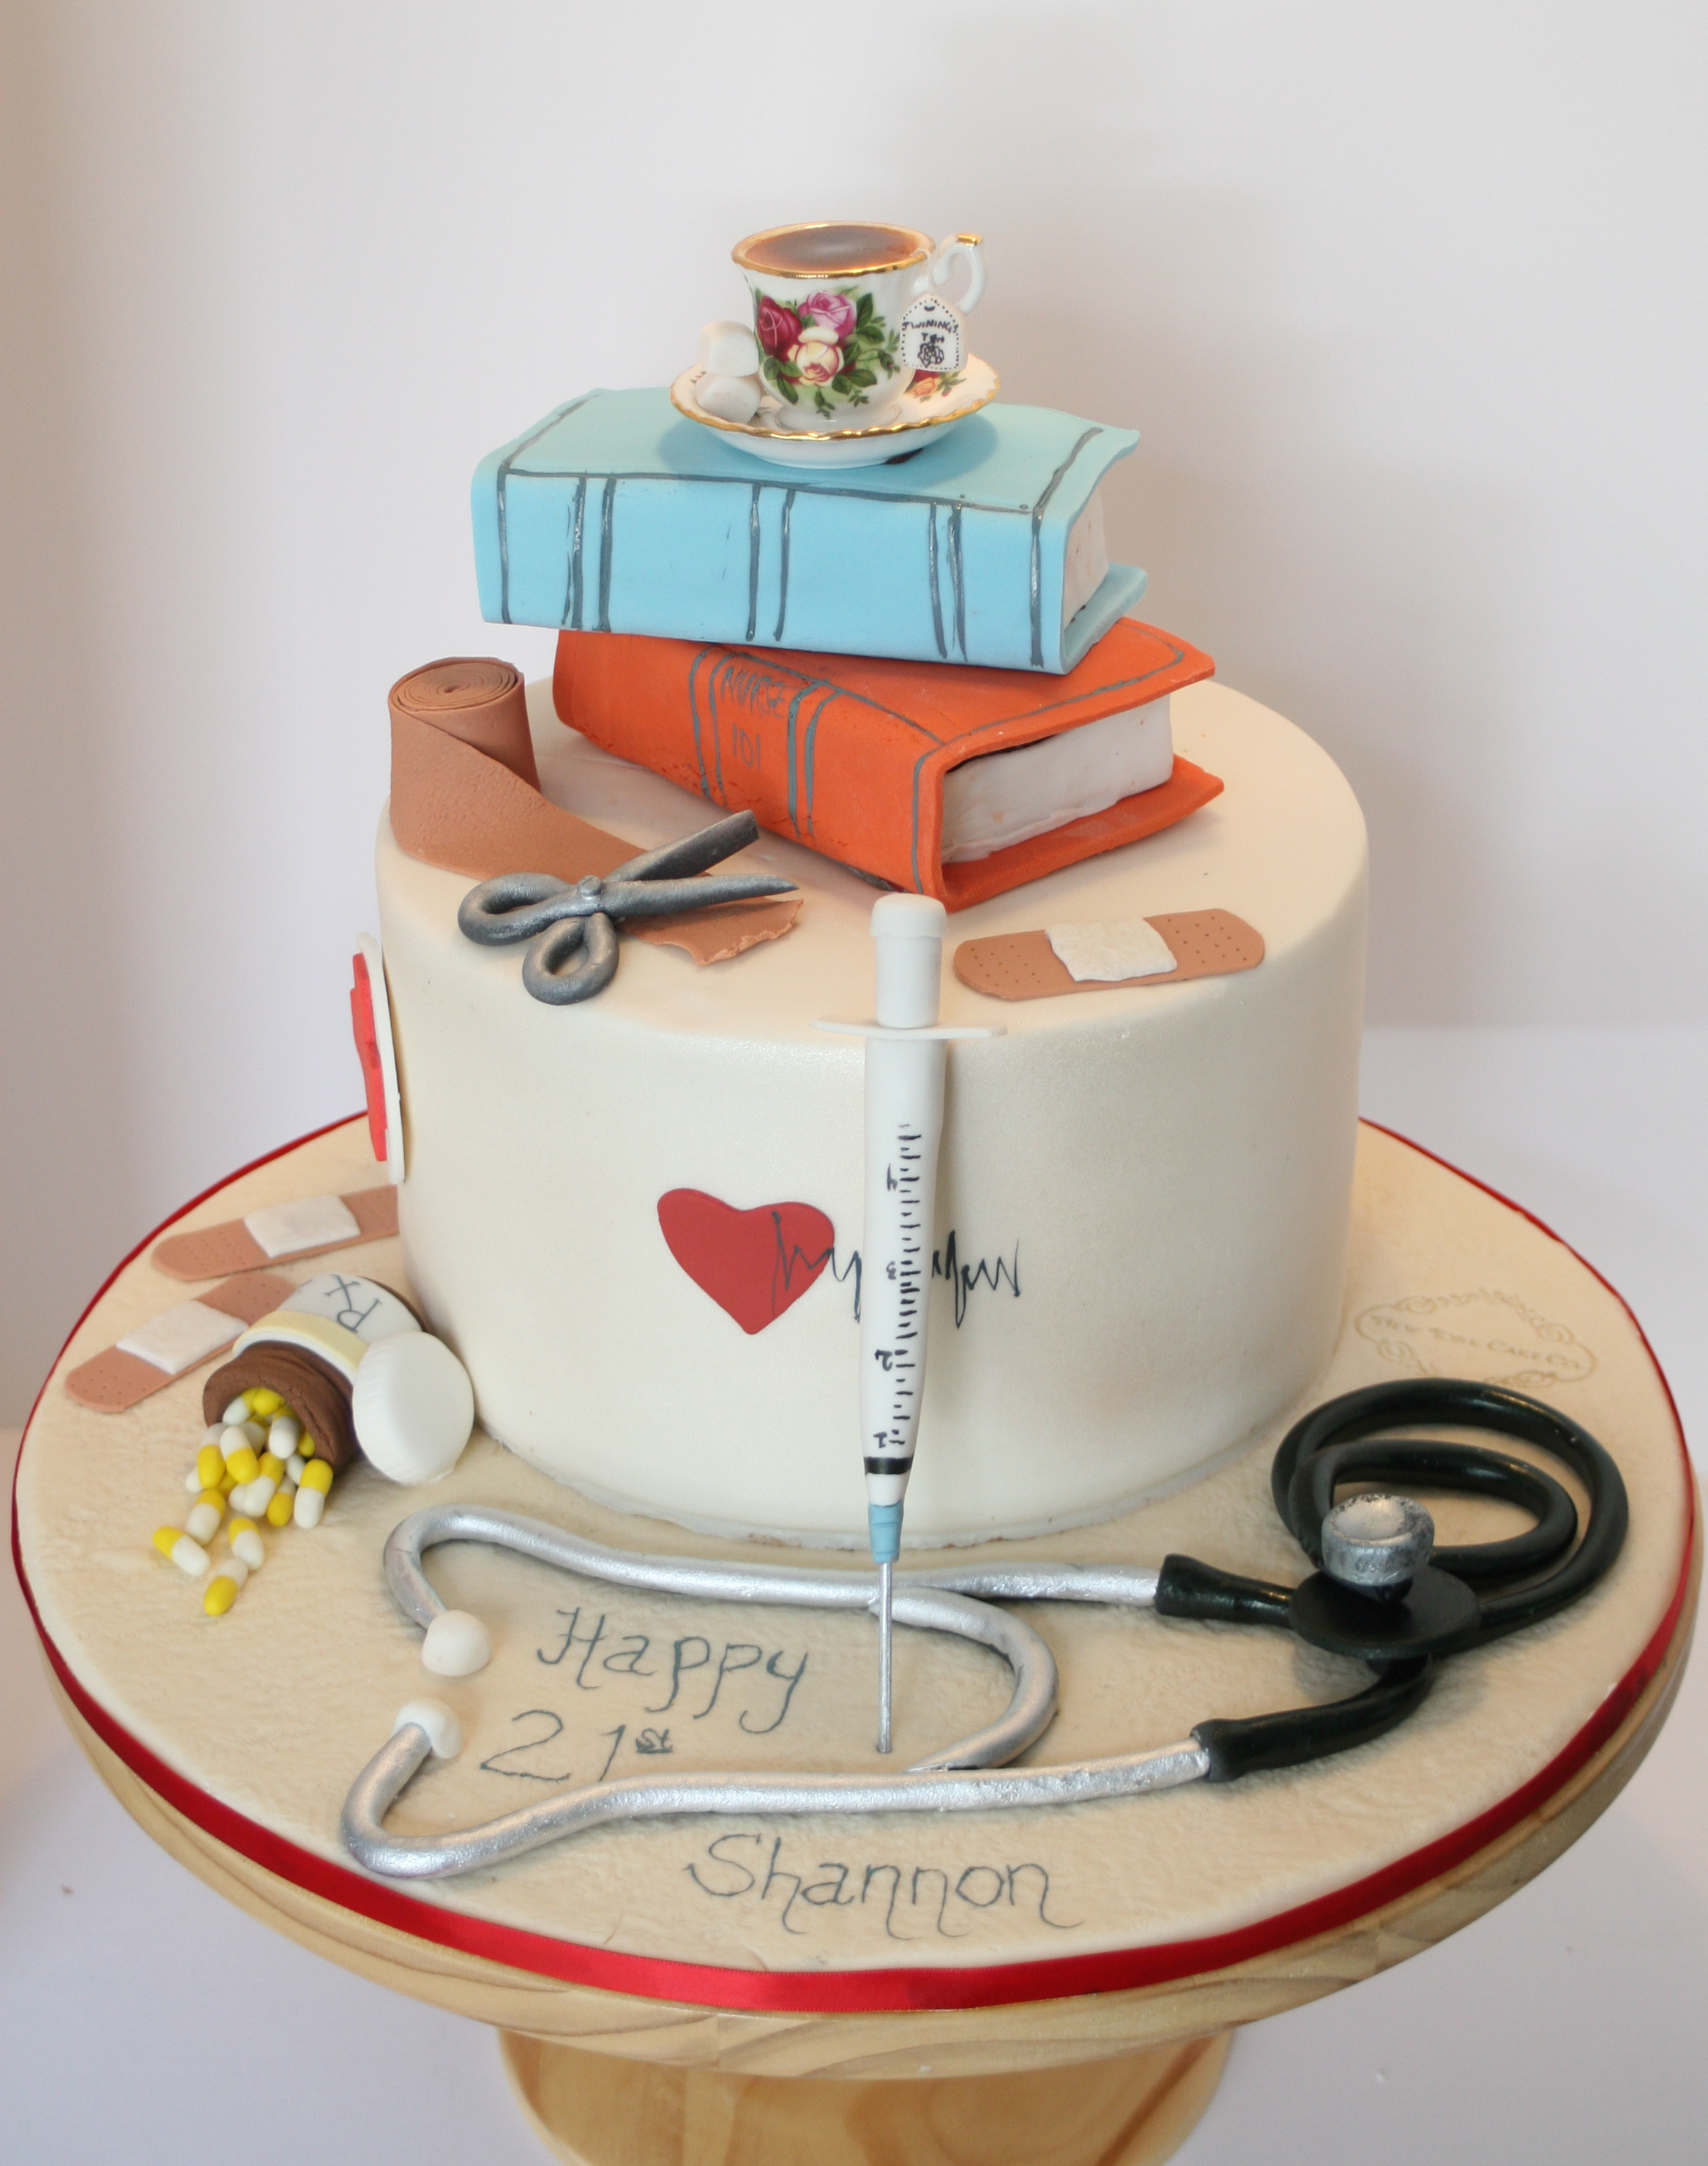 A Perfect Cake for a Student Nurse New York Cake Co.